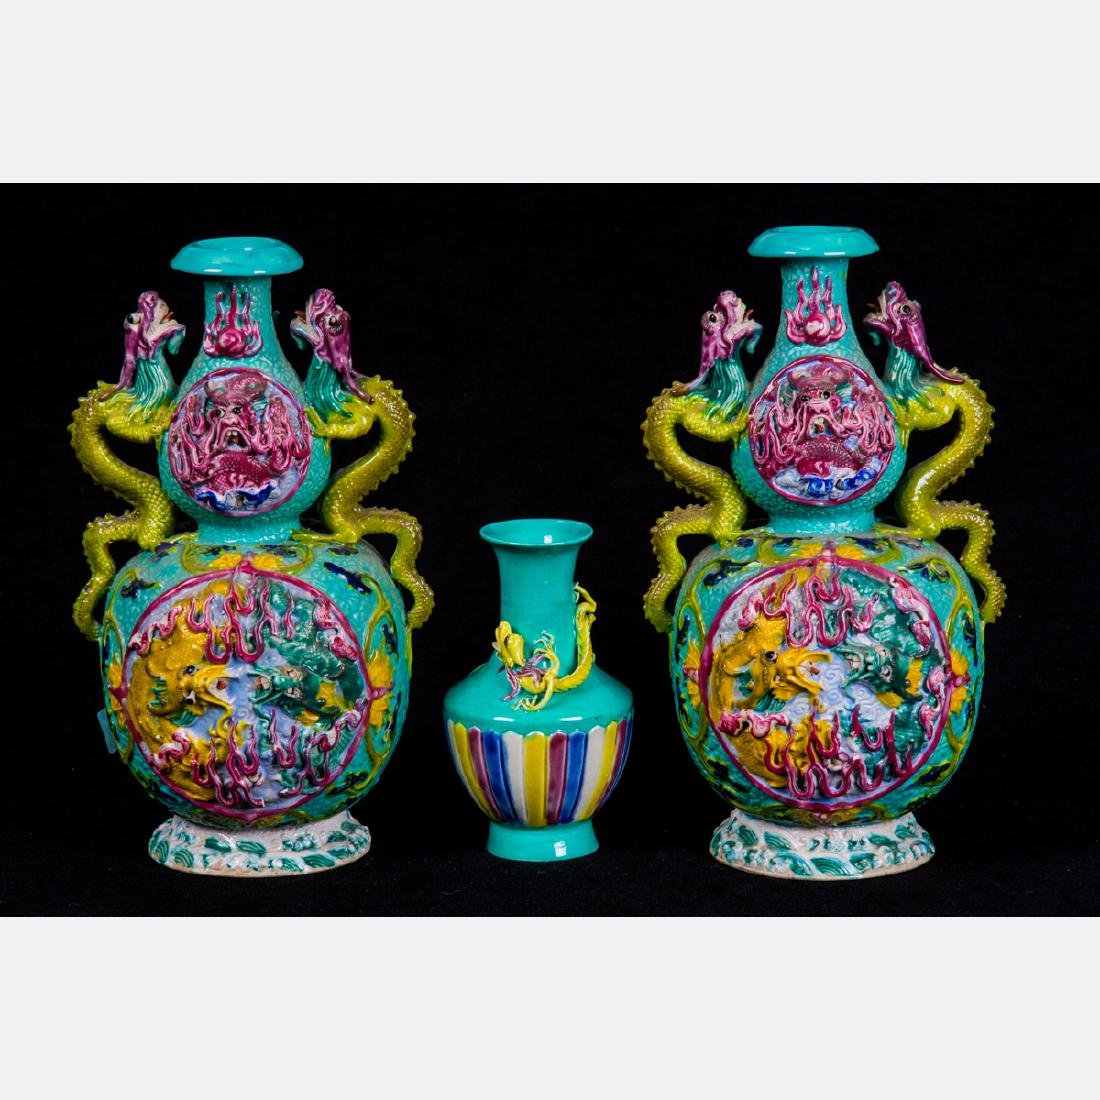 A Pair of Chinese Ceramic High Relief Vases Depicting a